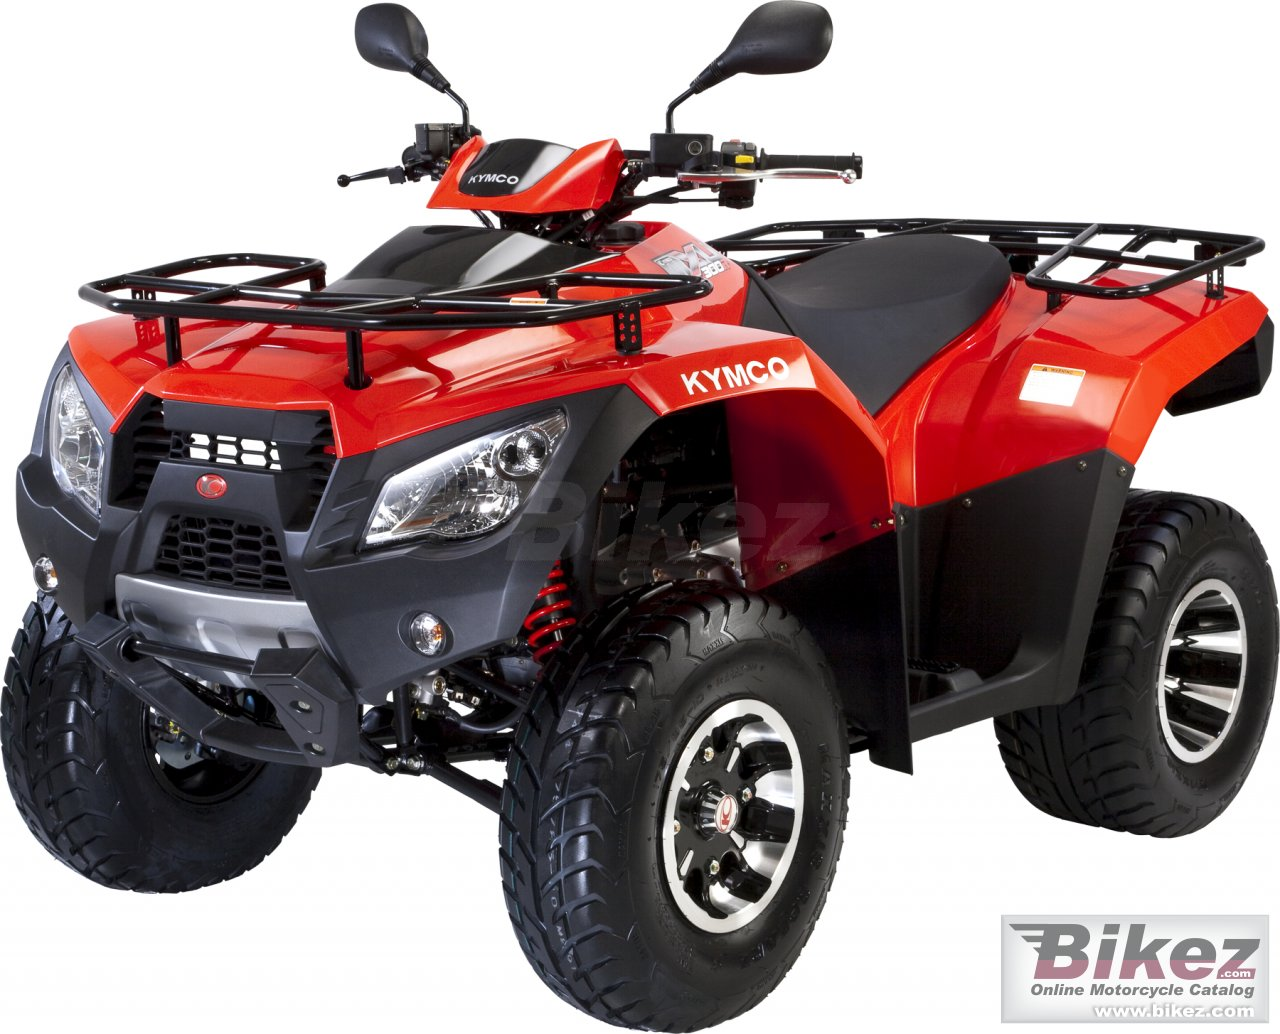 Big Kymco mxu 300 shaft drive picture and wallpaper from Bikez.com